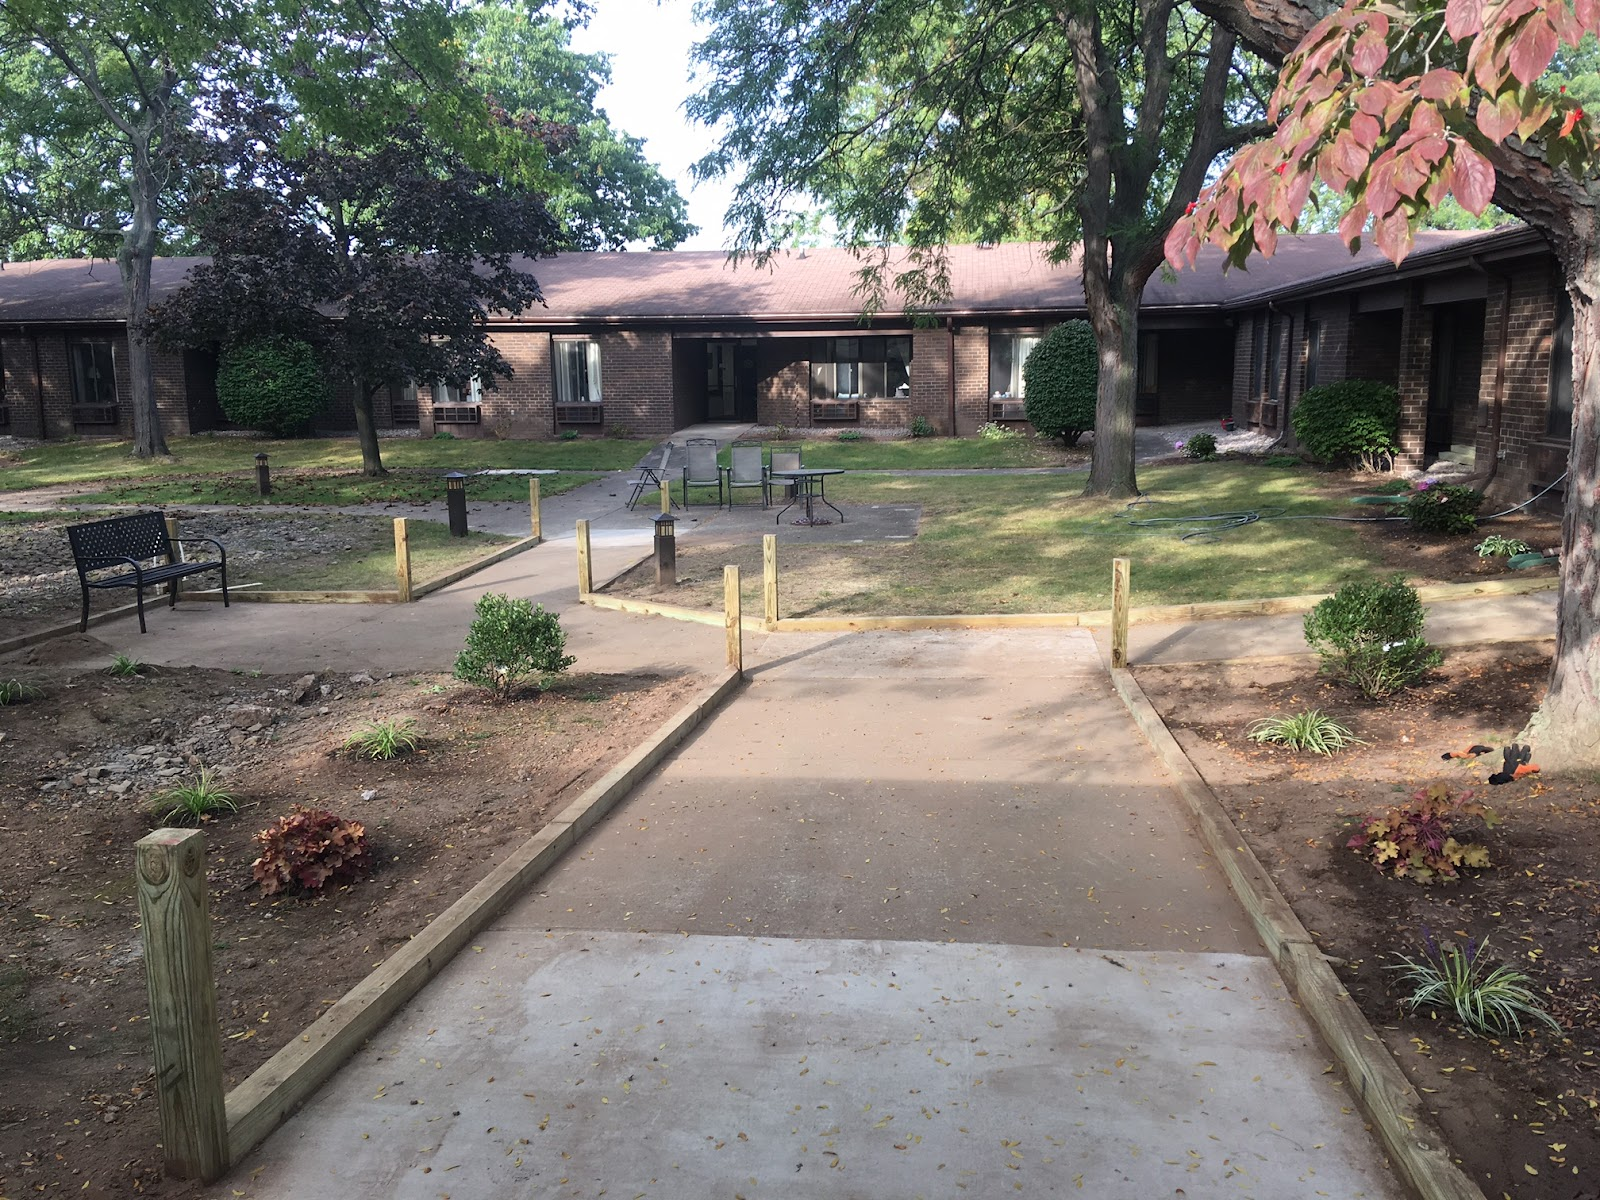 The Maintenance Department Has Been Hard At Work Laying Down Stone,  Planting And Putting Up Wood Railing Accents Along The Walkways.